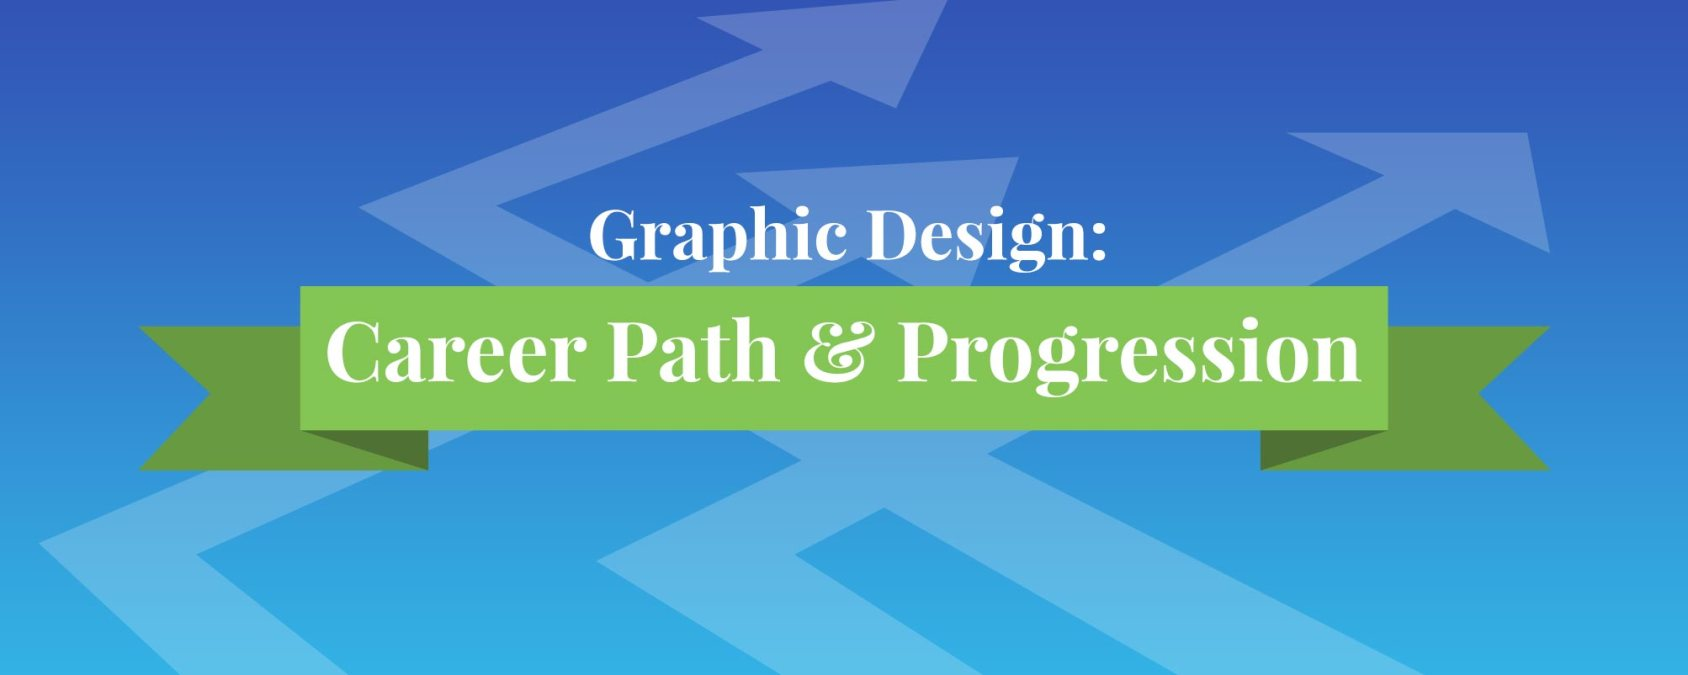 Graphic Design Career Path and Progression